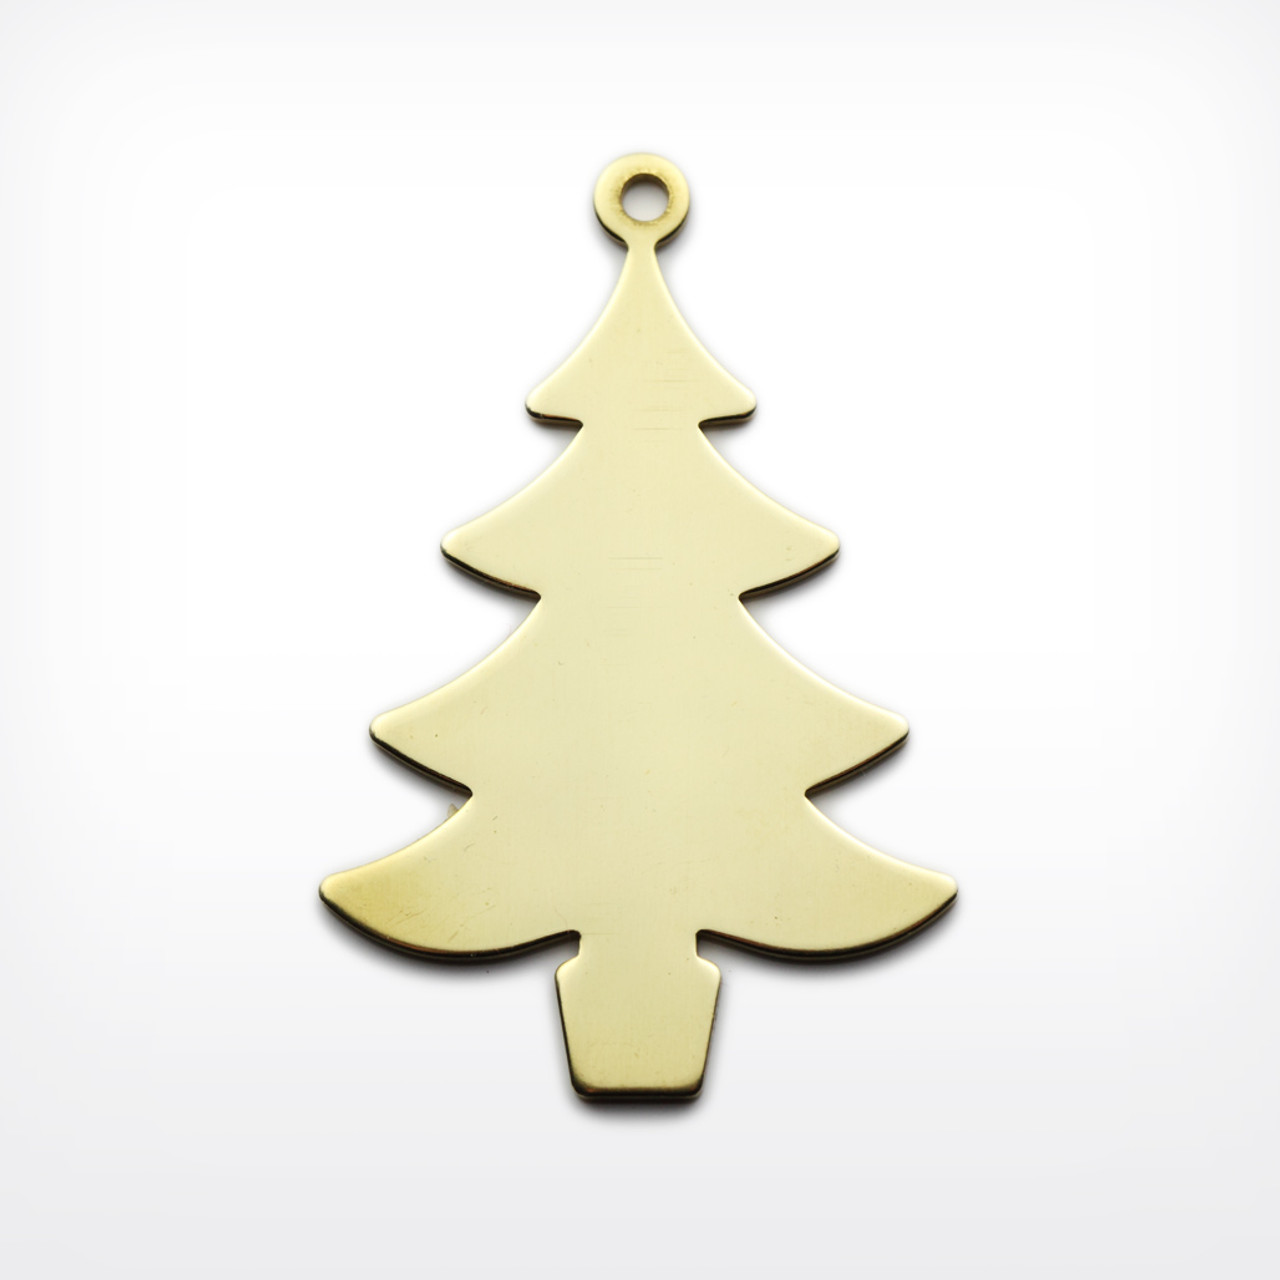 Brass Christmas Tree, with lug - Pack of 10 (441-BR)